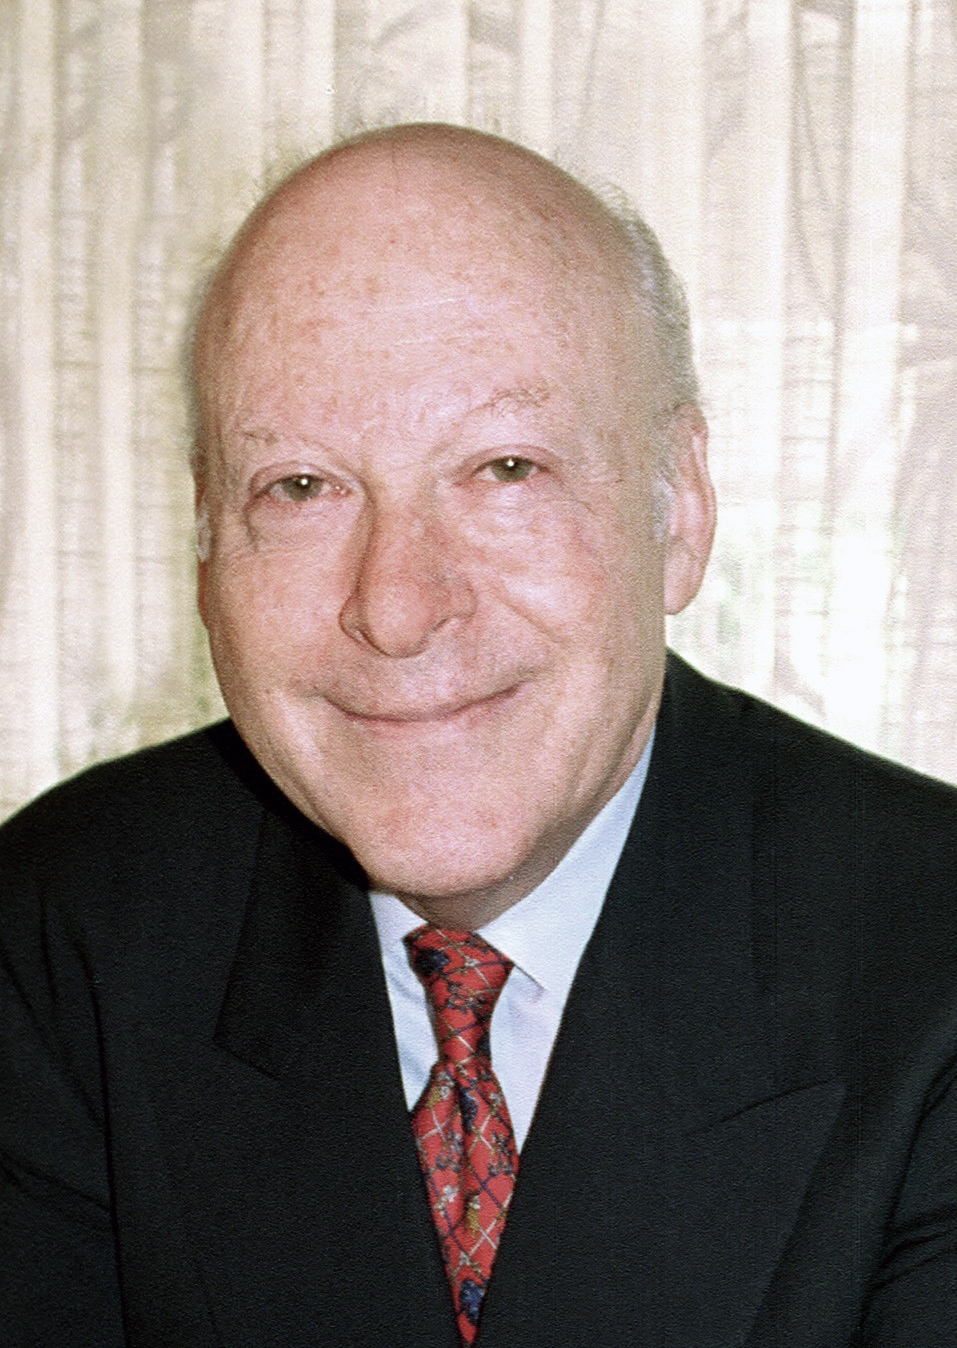 QVC Founder Joe Segel